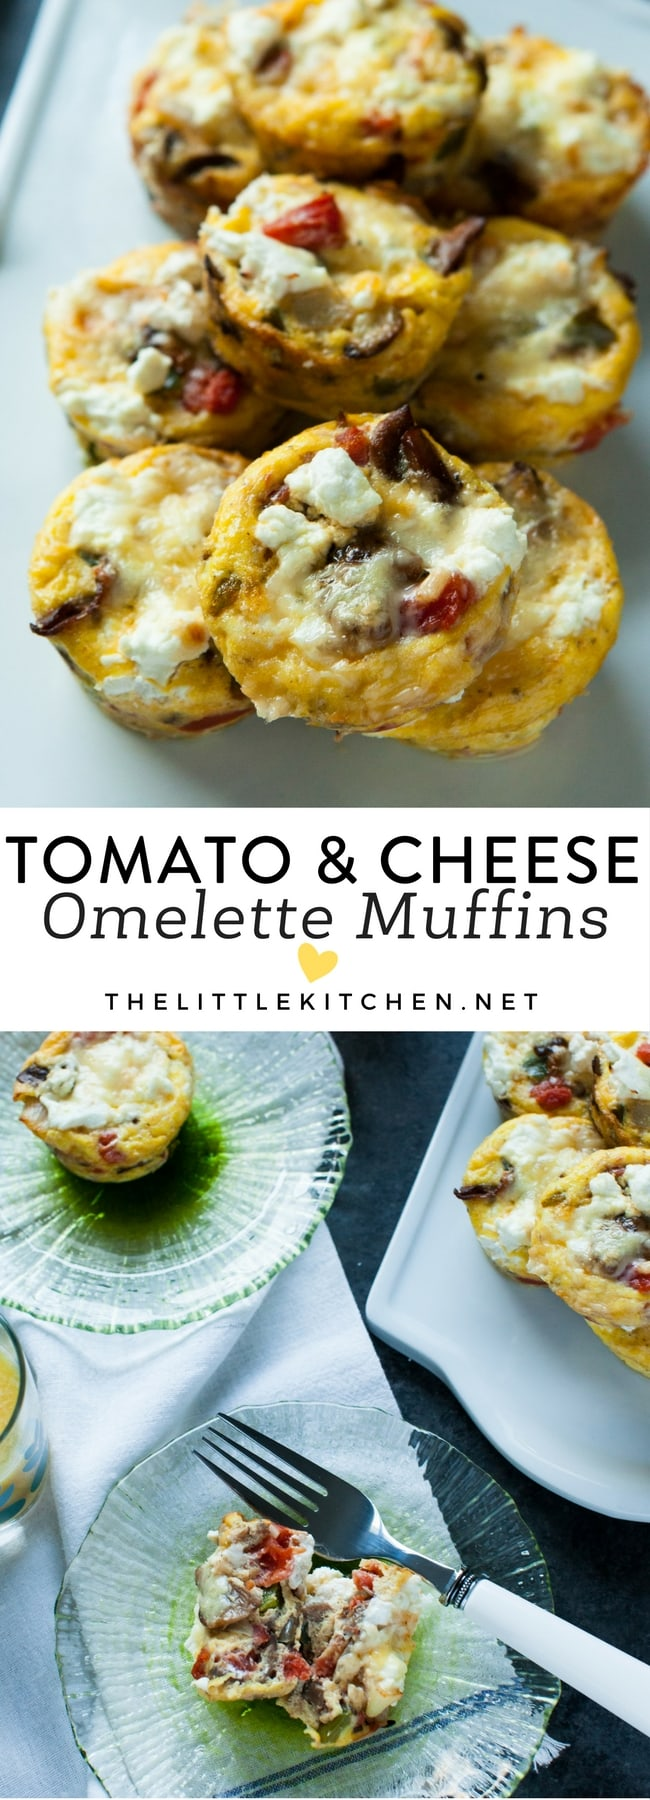 Tomato and Cheese Omelette Muffins from thelittlekitchen.net